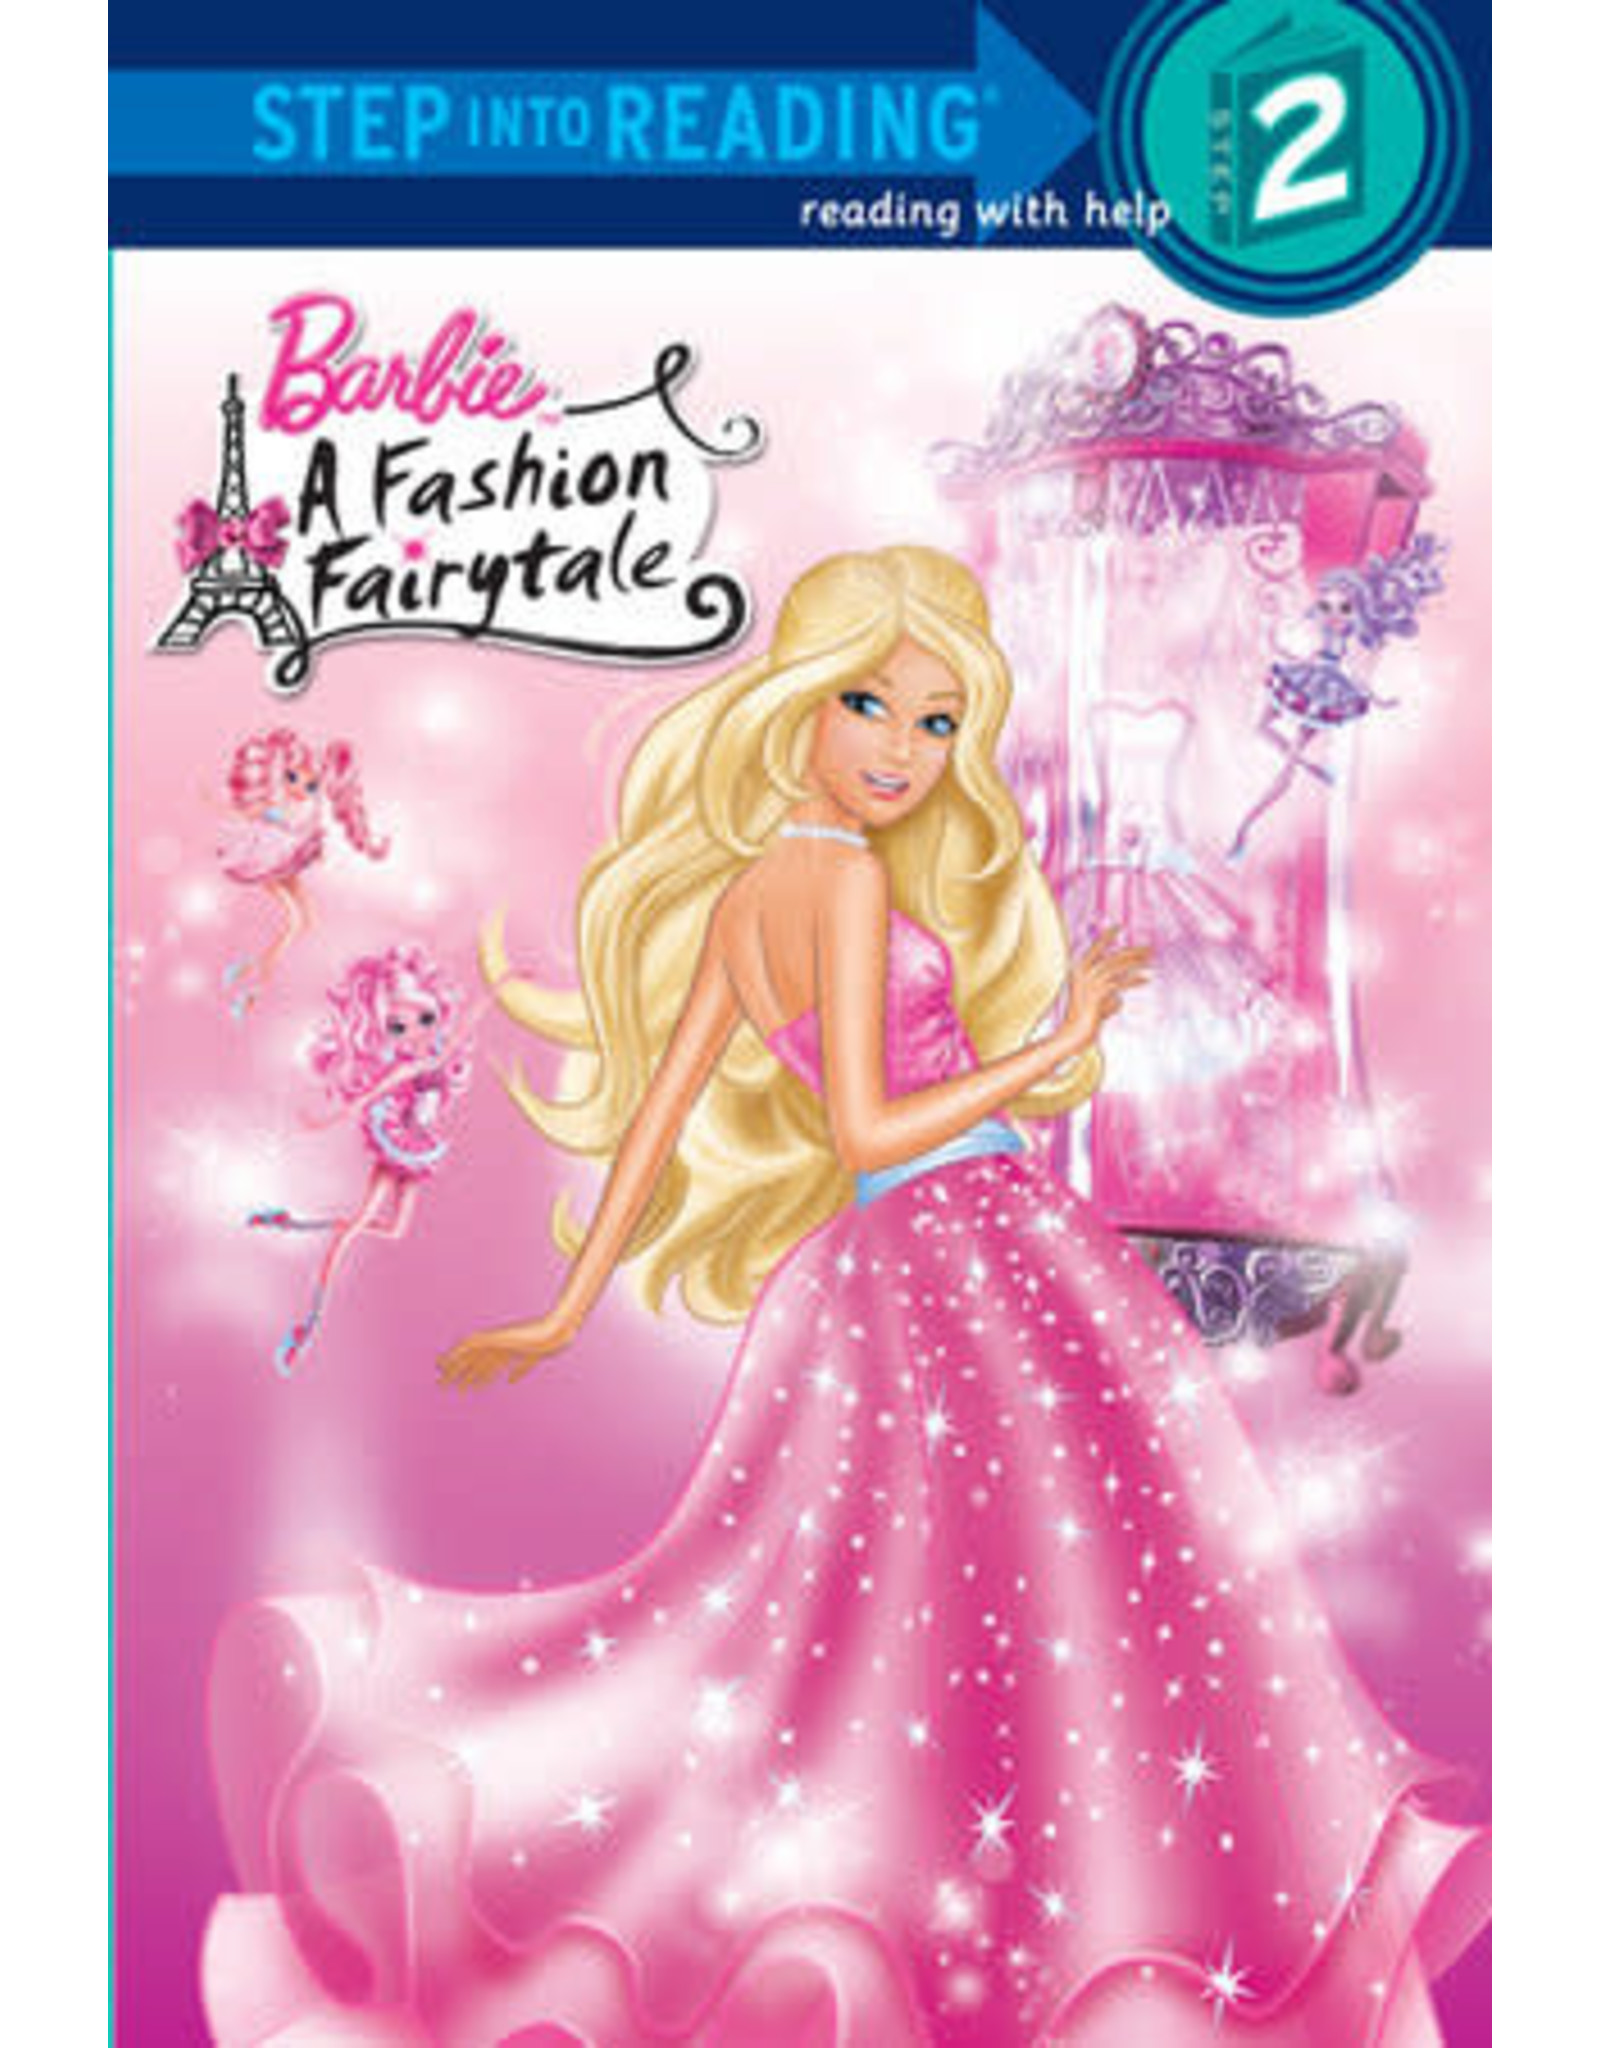 Step Into Reading Step Into Reading - Barbie A Fashion Fairytale (Step 2)